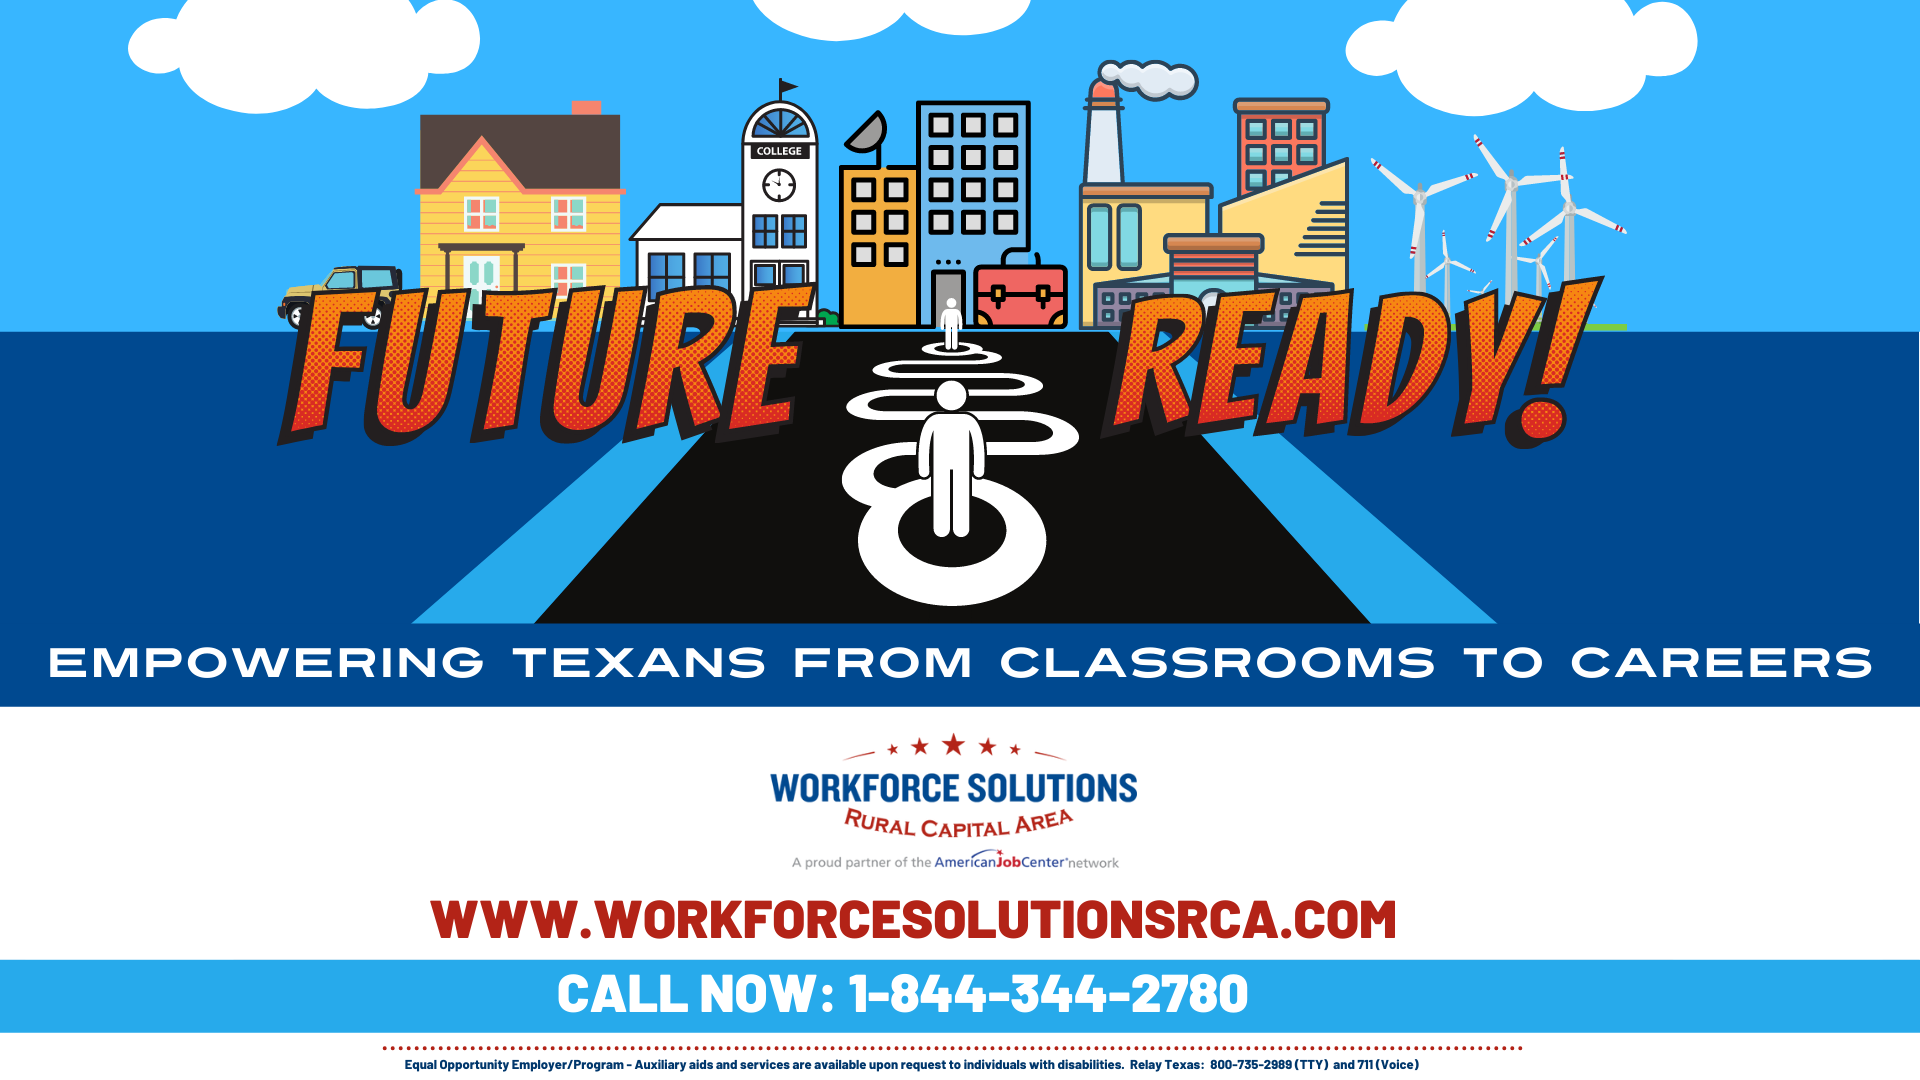 WSRCA Youth Services Future Ready